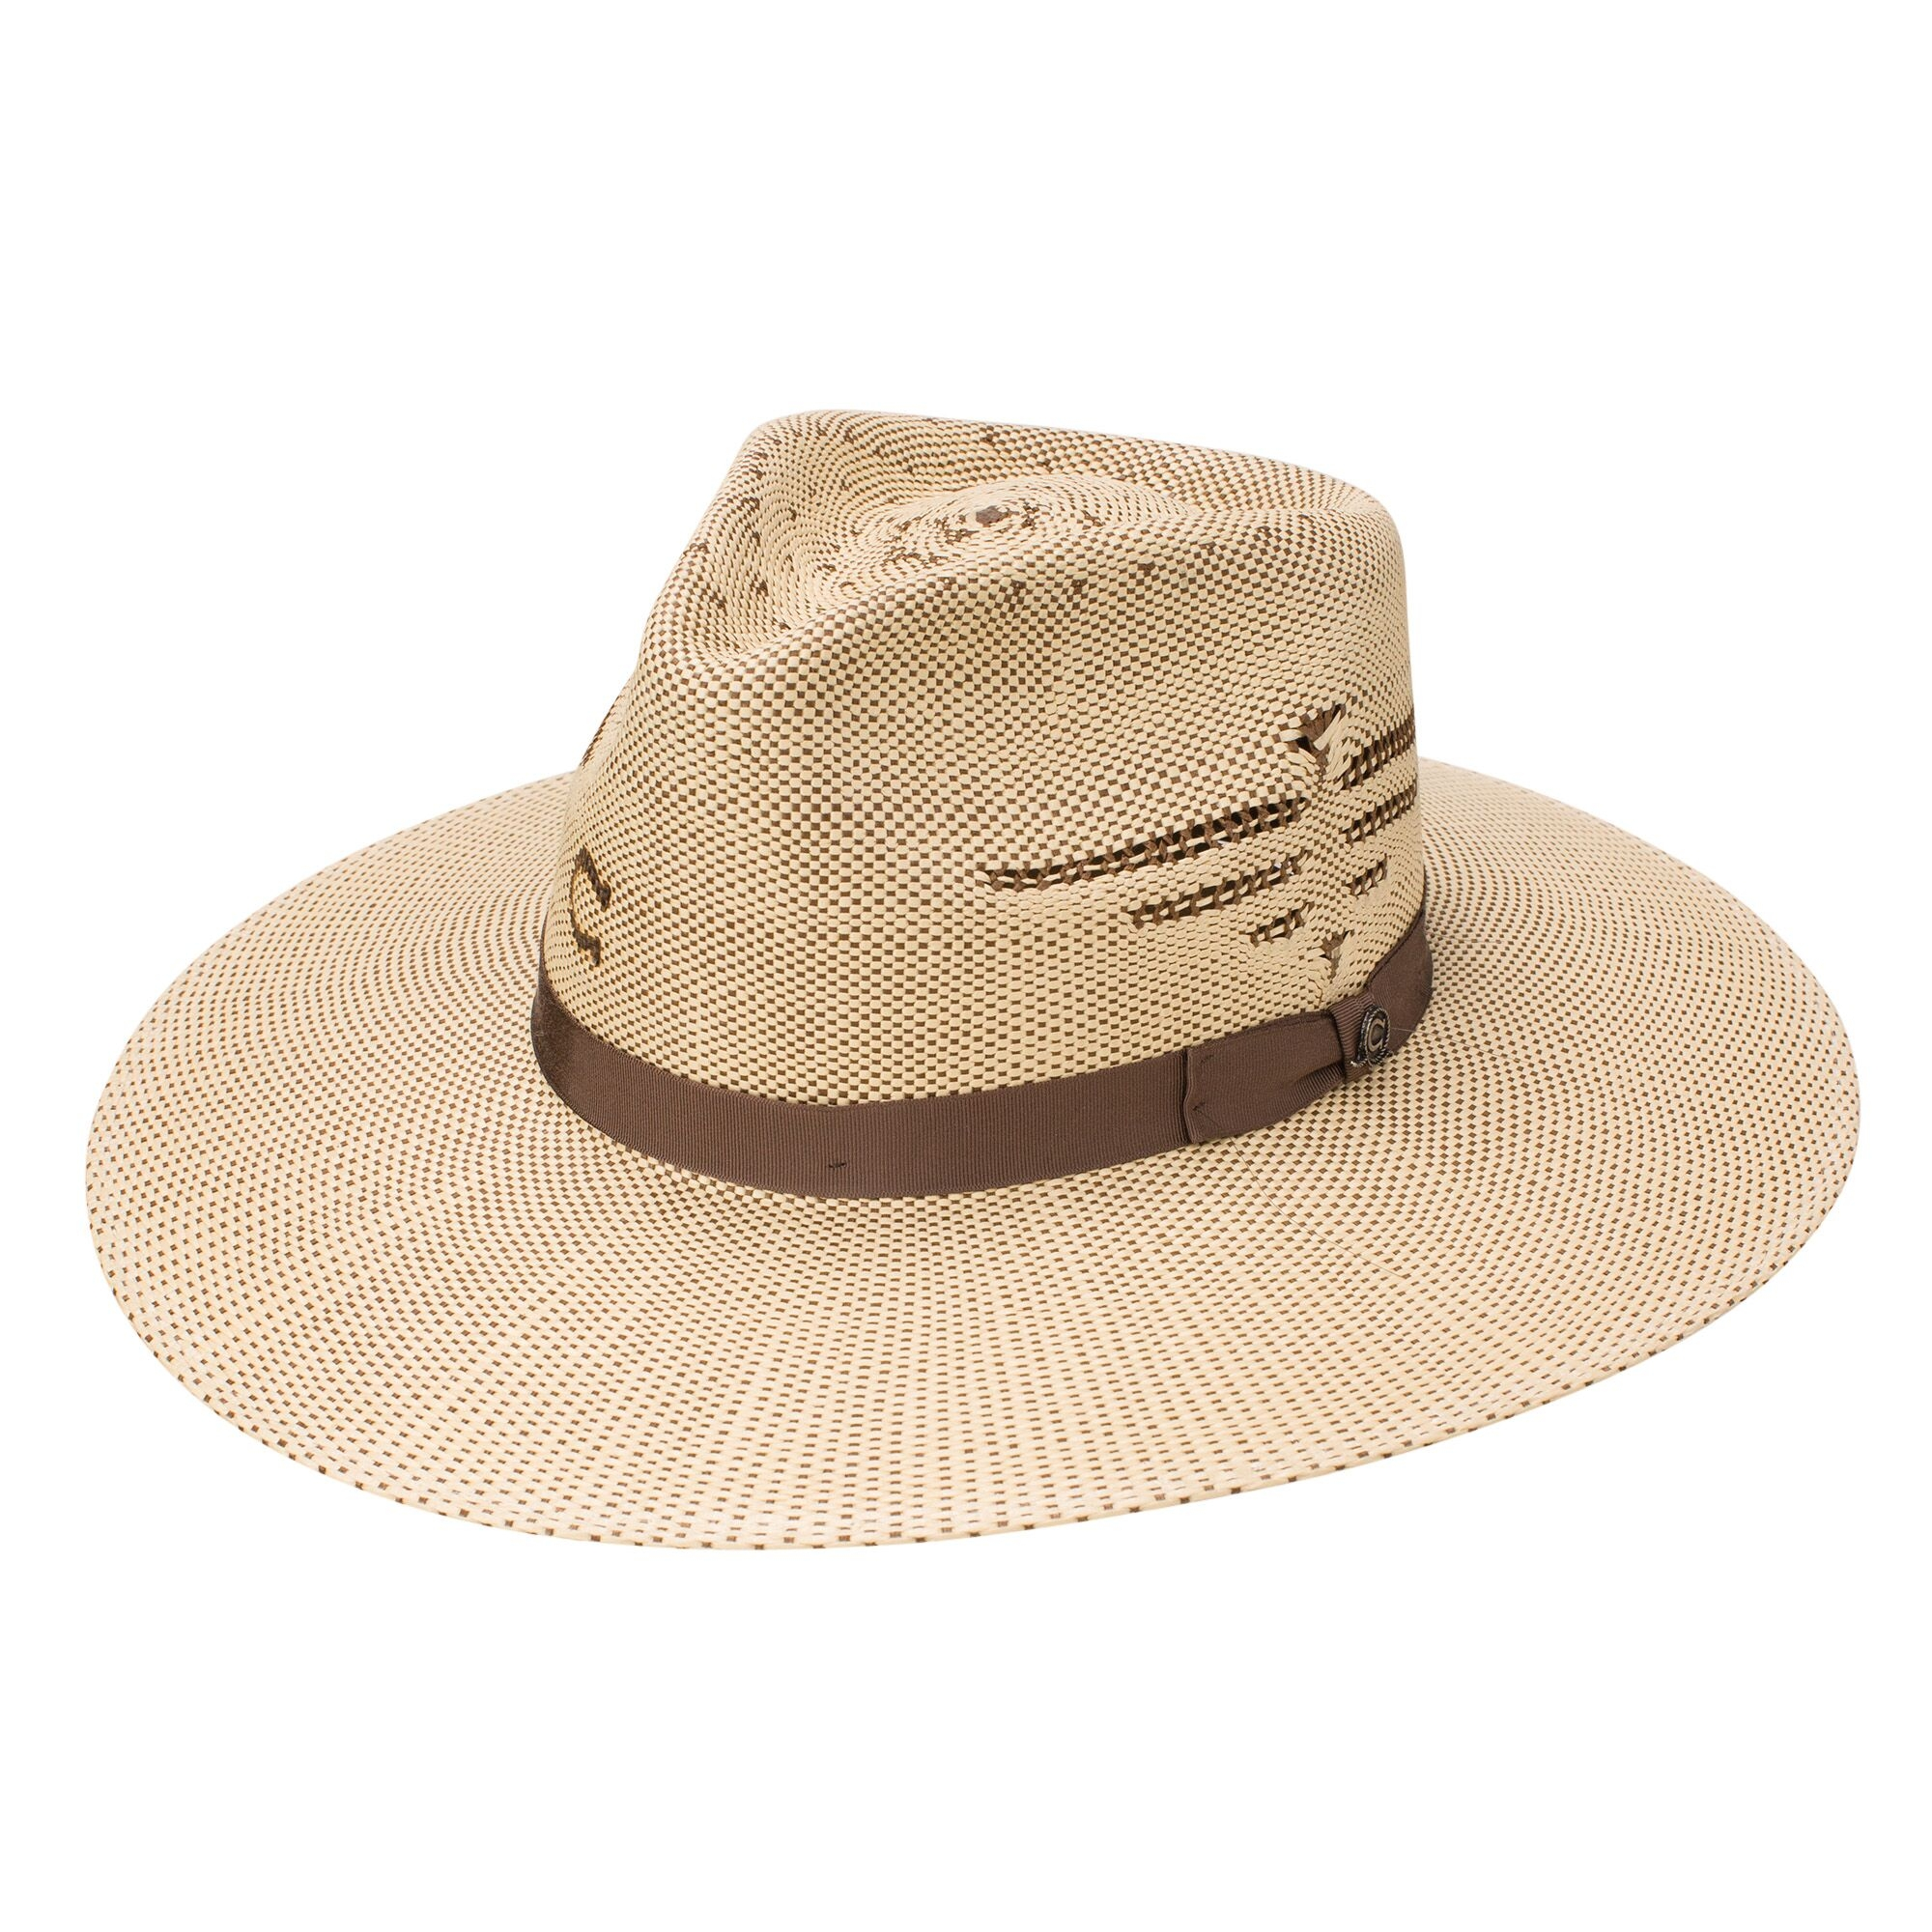 Charlie 1 Horse Mexico Shore - Straw Cowgirl Hat